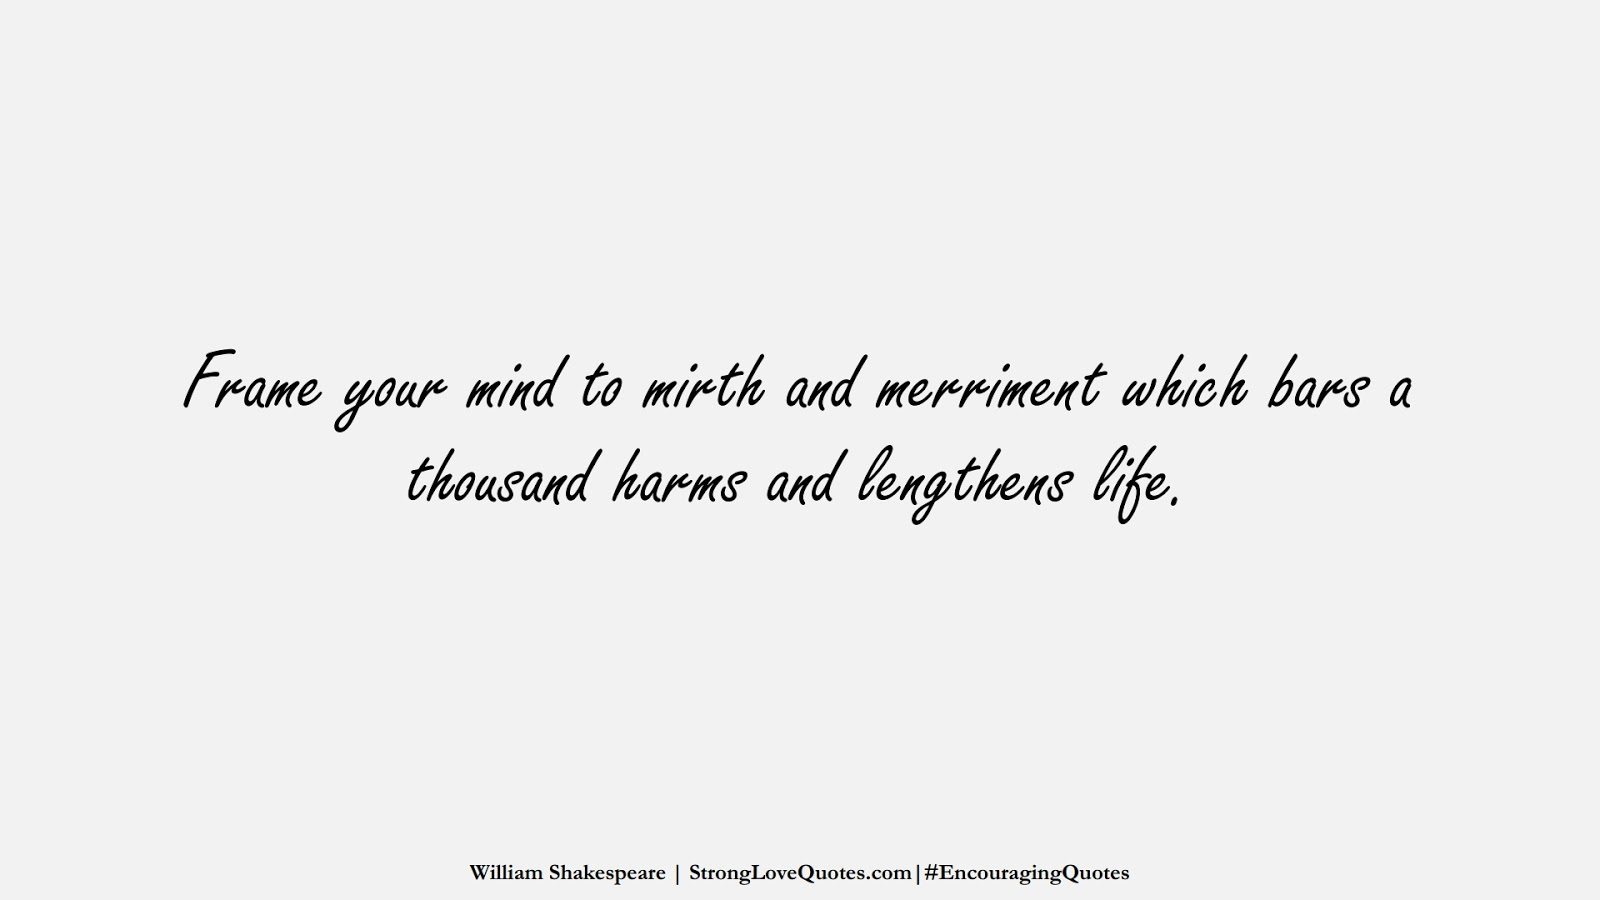 Frame your mind to mirth and merriment which bars a thousand harms and lengthens life. (William Shakespeare);  #EncouragingQuotes